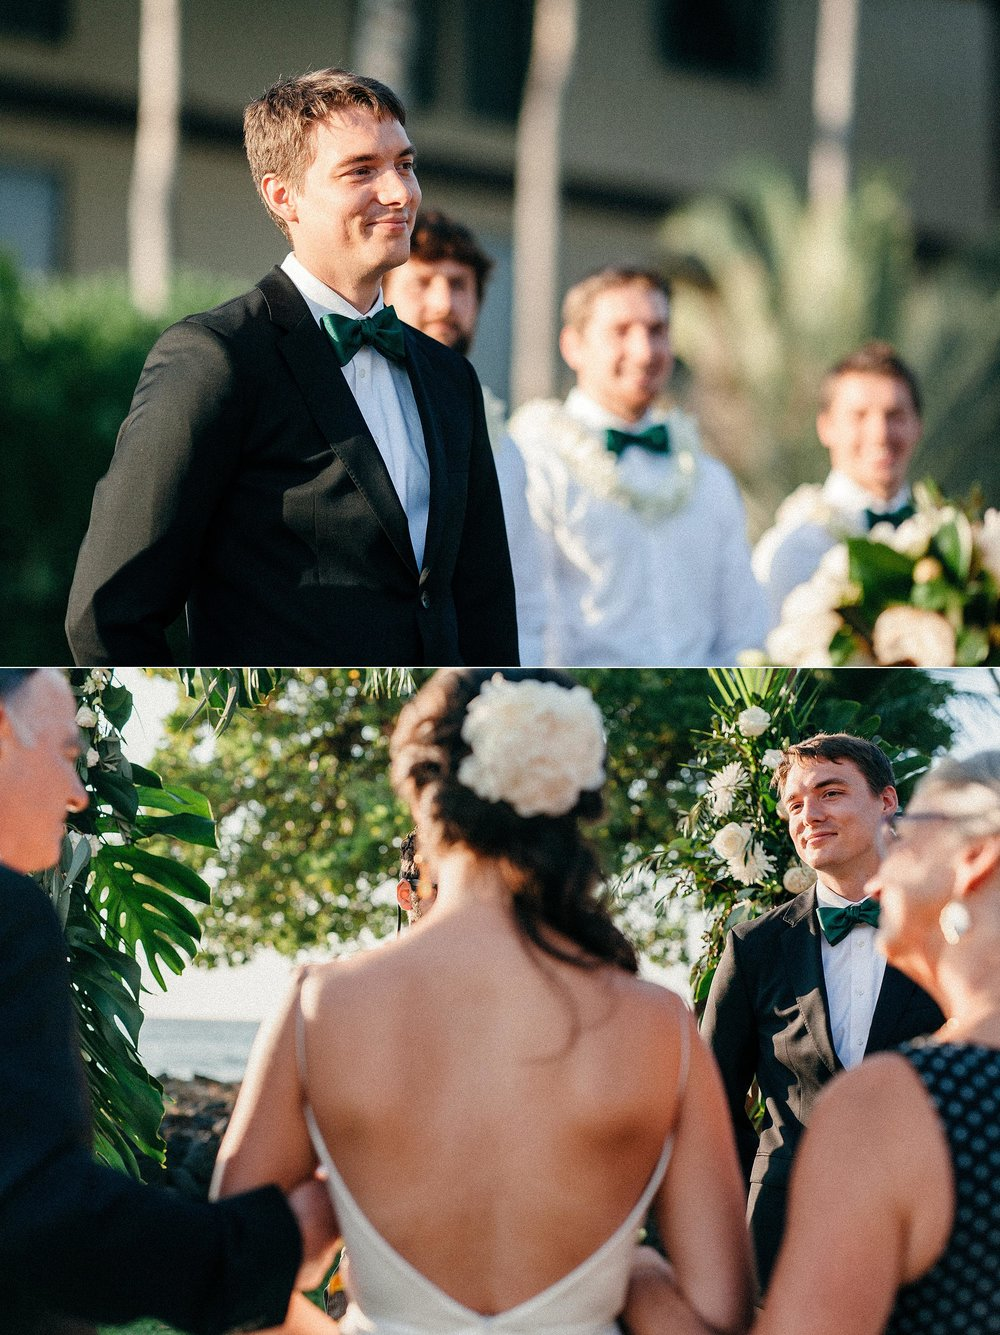 Kona-Big-Island-Hawaii-New-Years-Eve-Wedding-with-Ceremony-at-Living-Stones-Church-and-Reception-at-Daylight-Mind-Coffee_0012.jpg